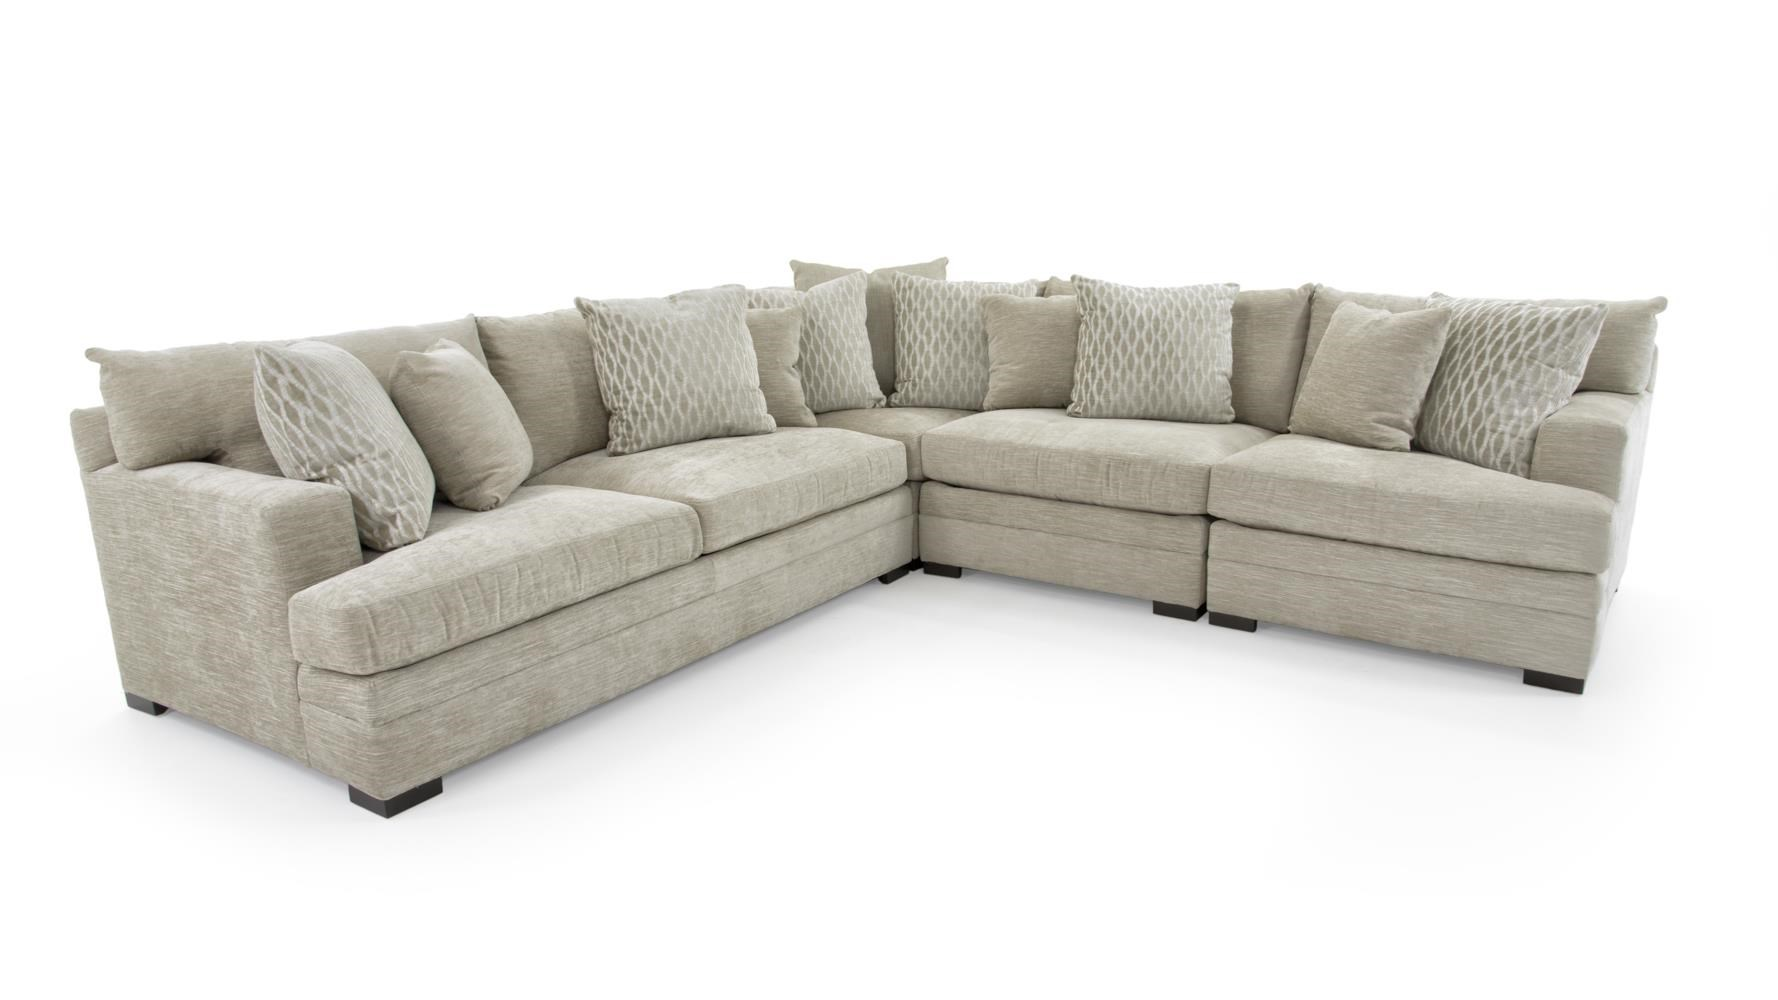 7100 Casual Contemporary Four Piece Sectional Sofa by Huntington House at  Baer\'s Furniture